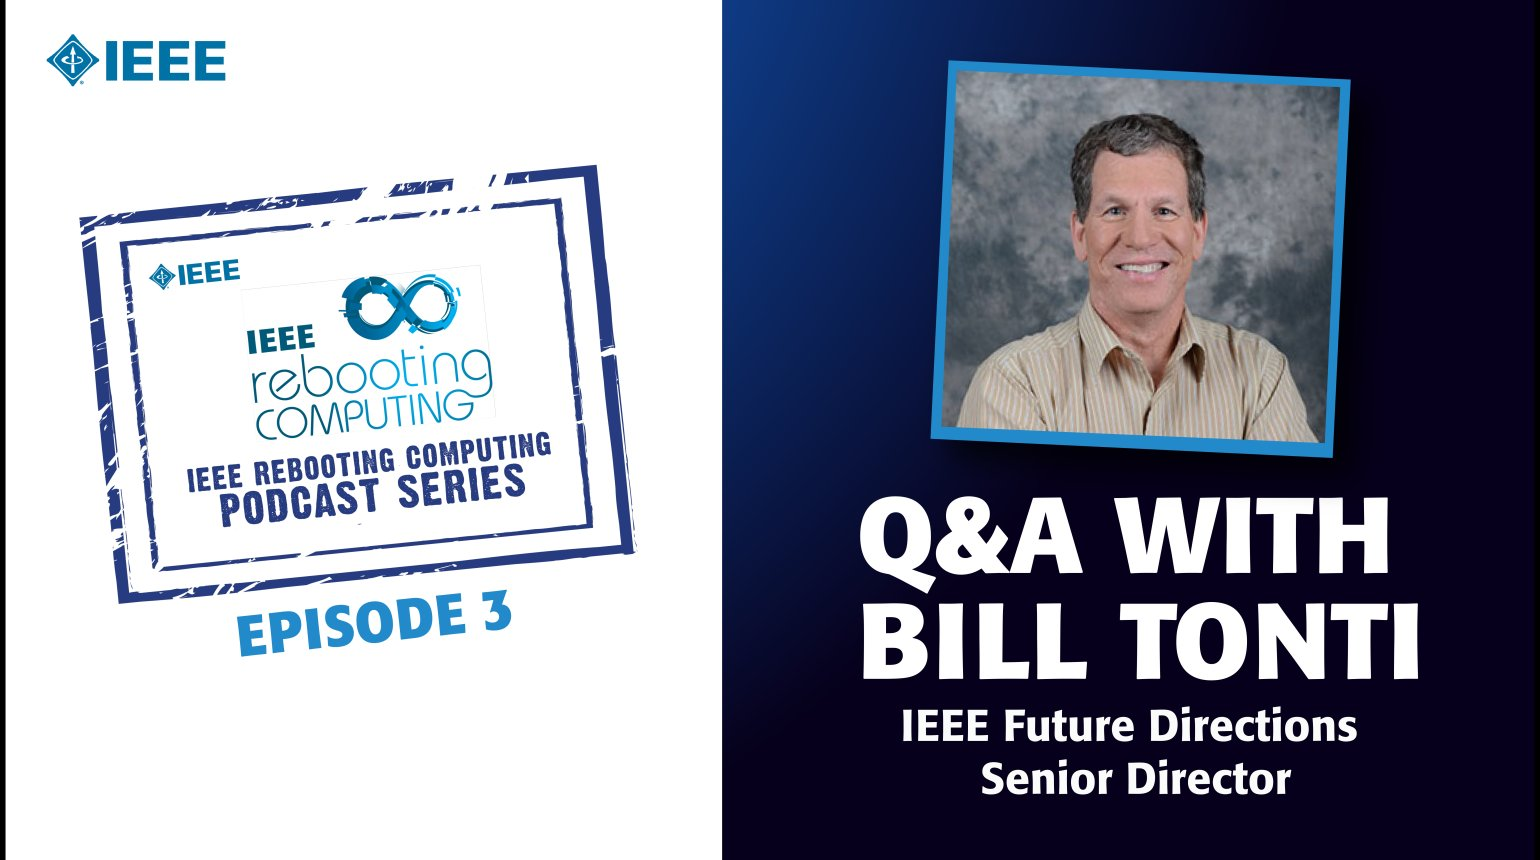 Q&A with Dr. Bill Tonti: IEEE Rebooting Computing Podcast, Episode 3